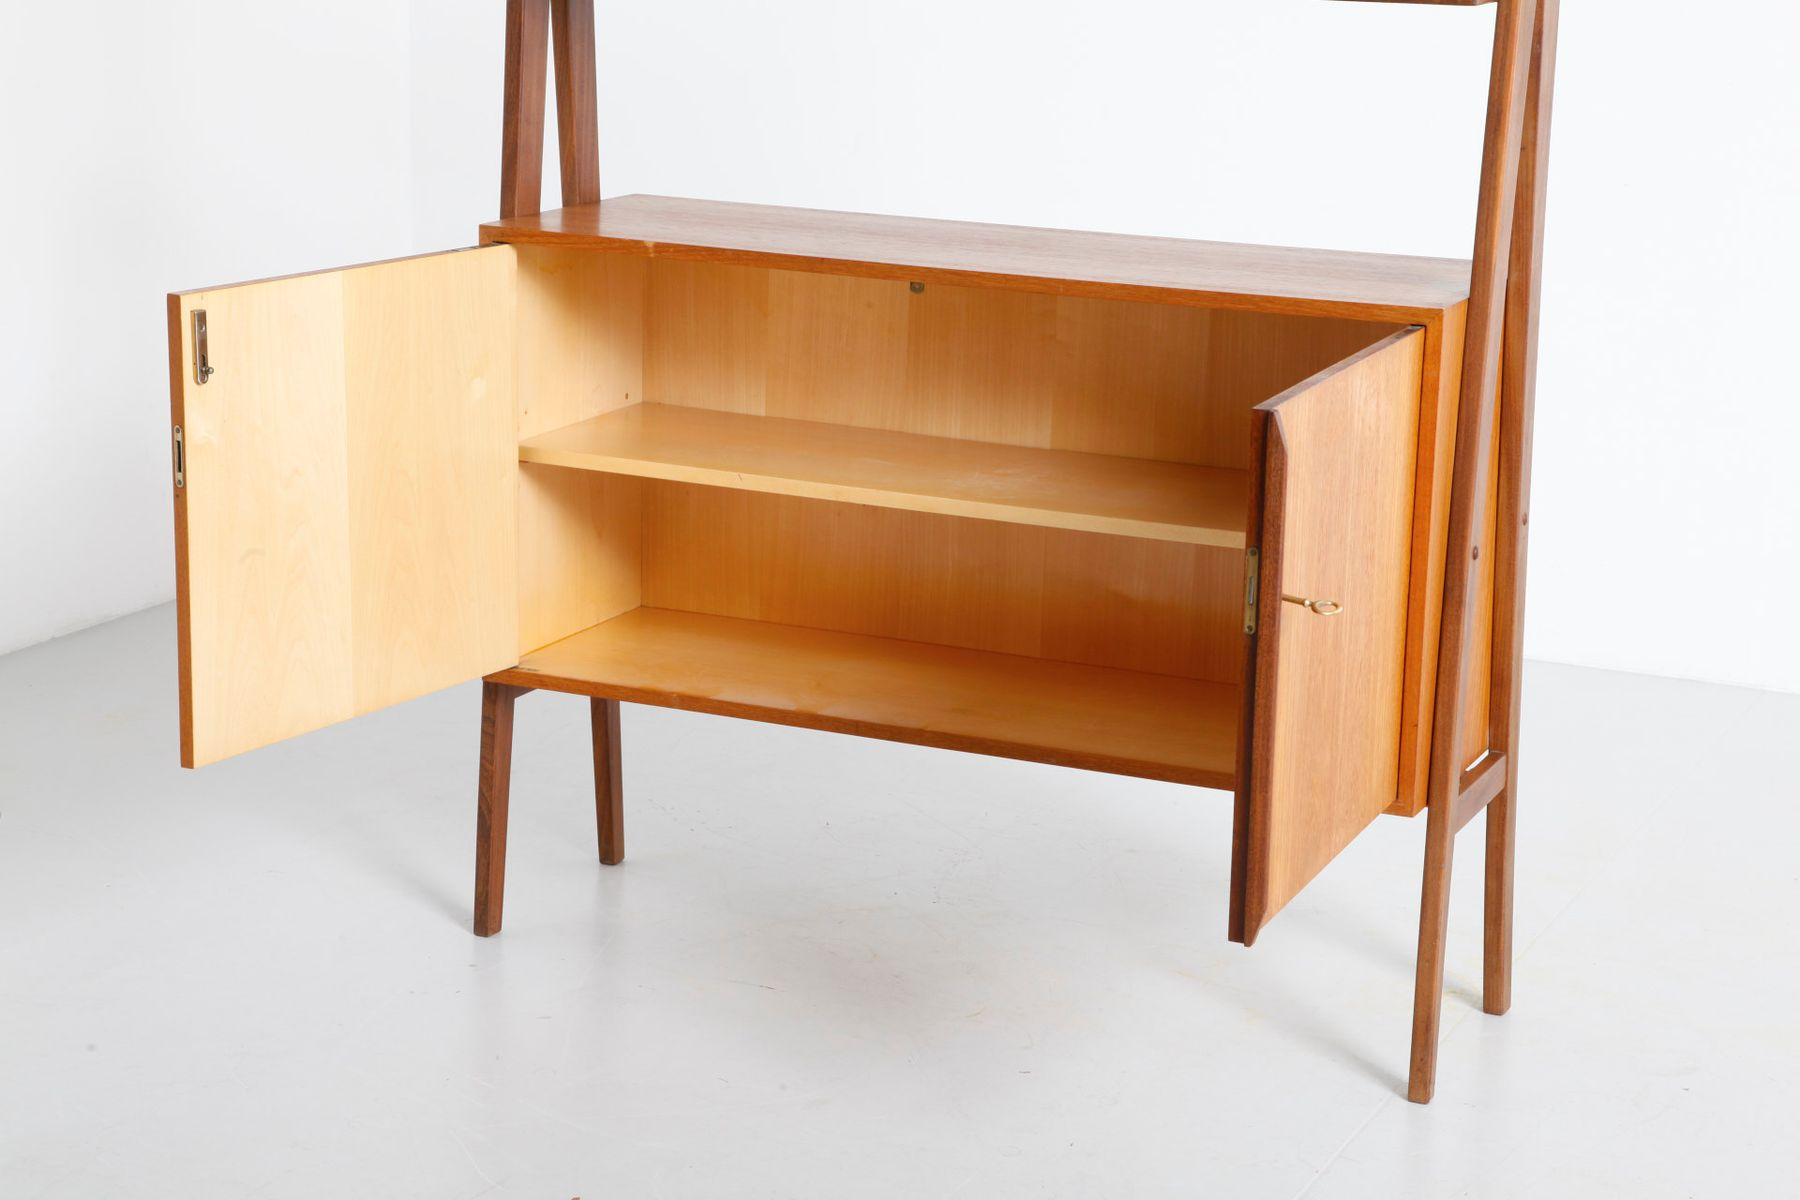 mid century free standing teak shelf from wk m bel for sale at pamono. Black Bedroom Furniture Sets. Home Design Ideas